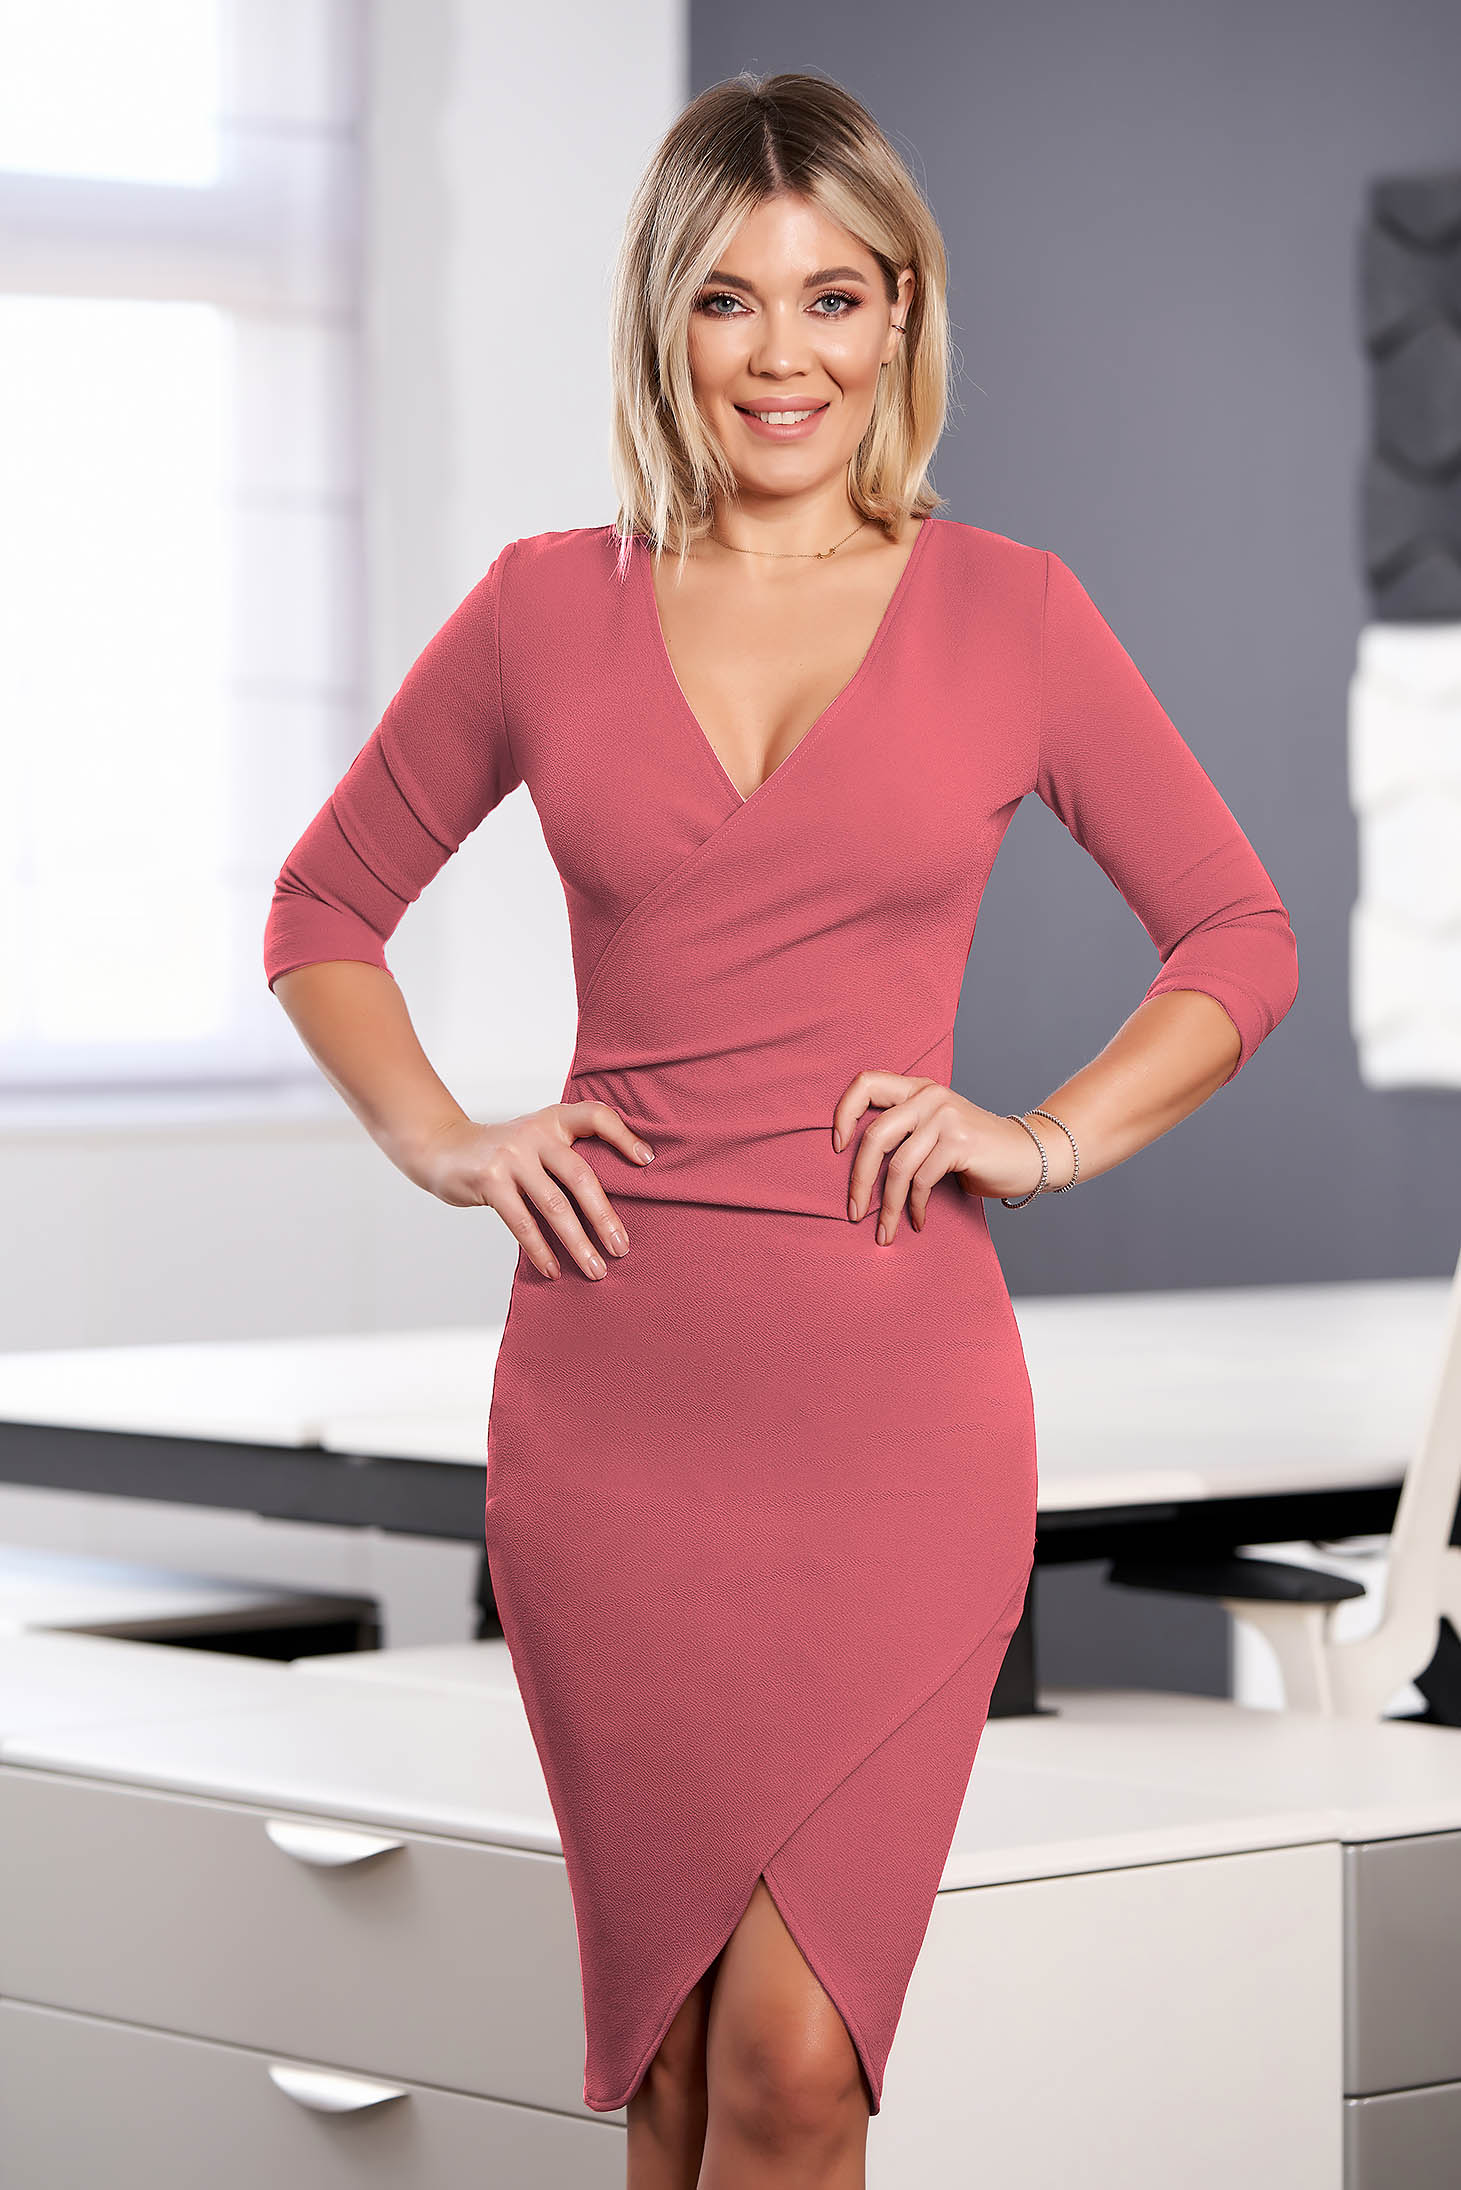 StarShinerS dress pink midi pencil with v-neckline wrap over front with 3/4 sleeves from elastic fabric